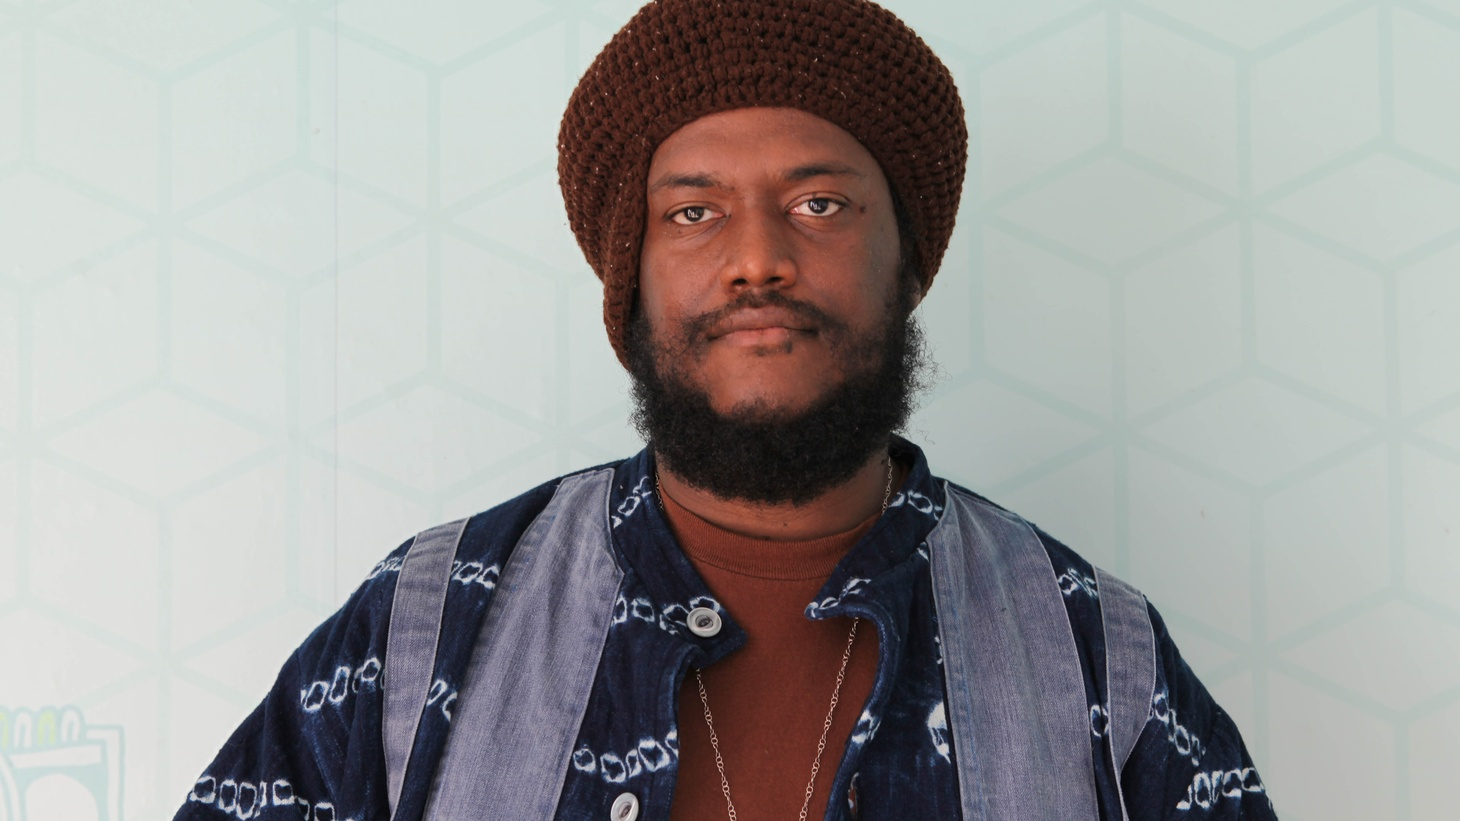 The new jazz record by Los Angeles-based tenor sax player and composer Kamasi Washington is 3-CD set featuring dozens of musicians and singers performing almost three hours of music.